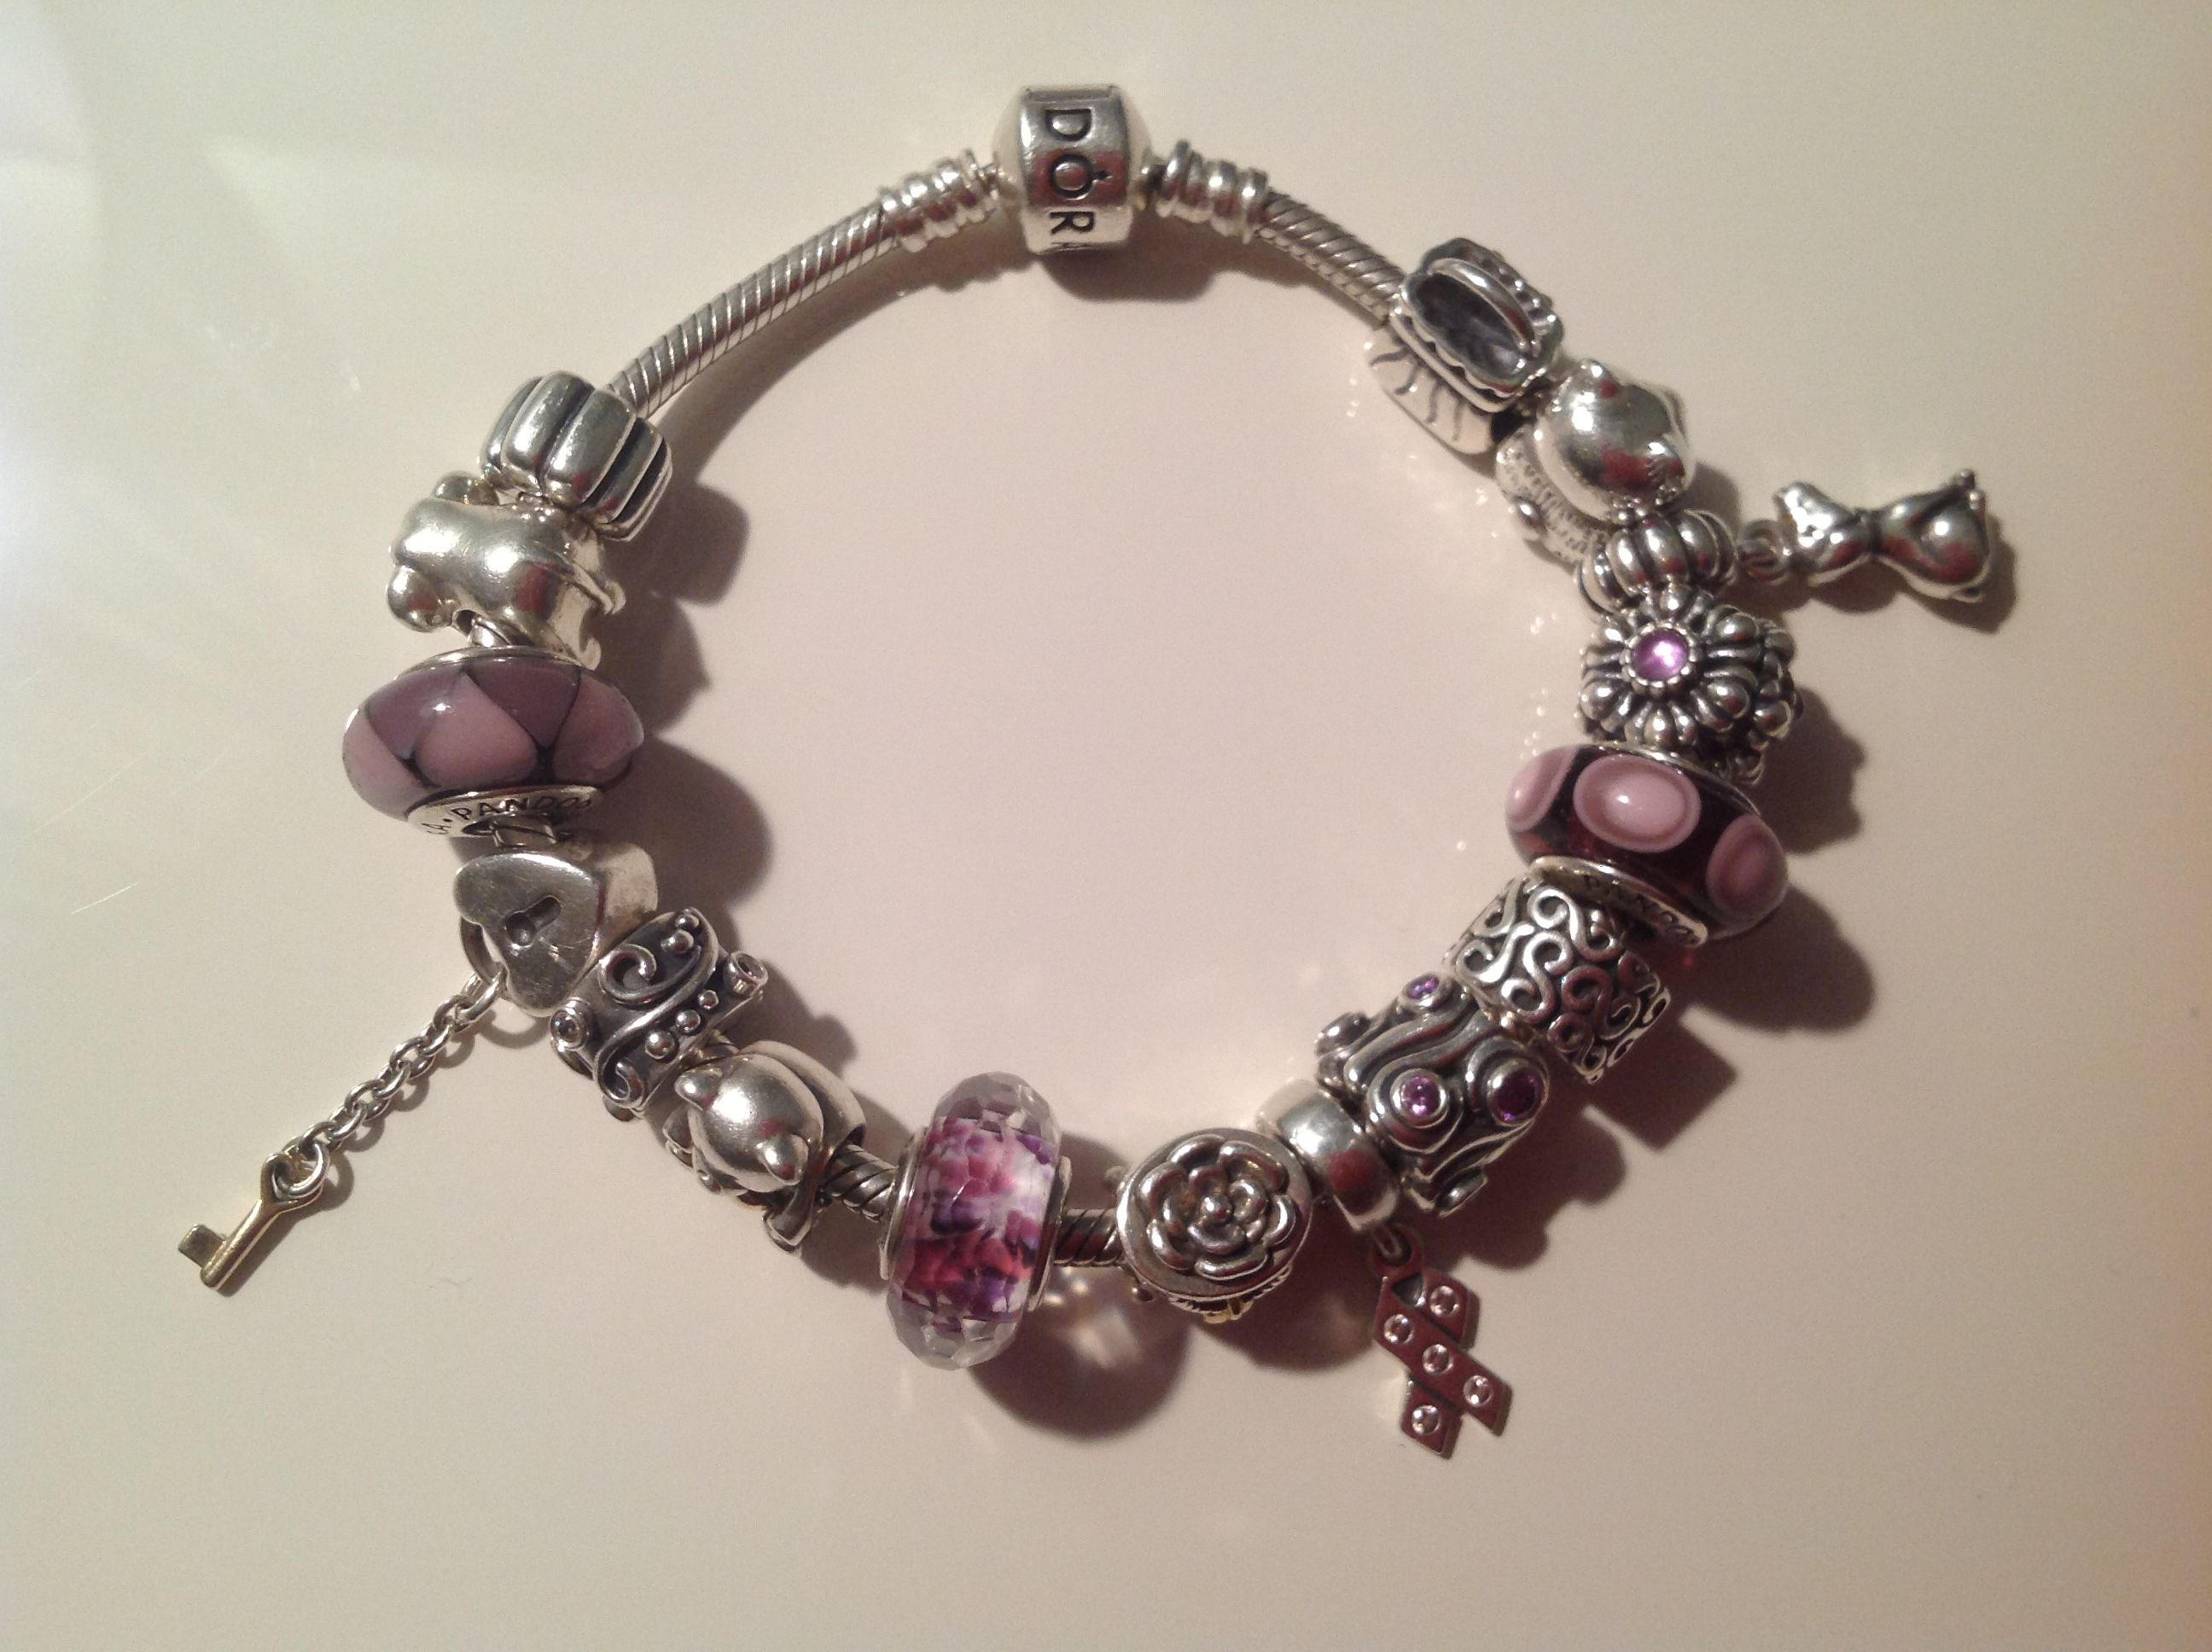 Stand Out Designs Jewelry : Purple and pink charms make this sterling silver bracelet